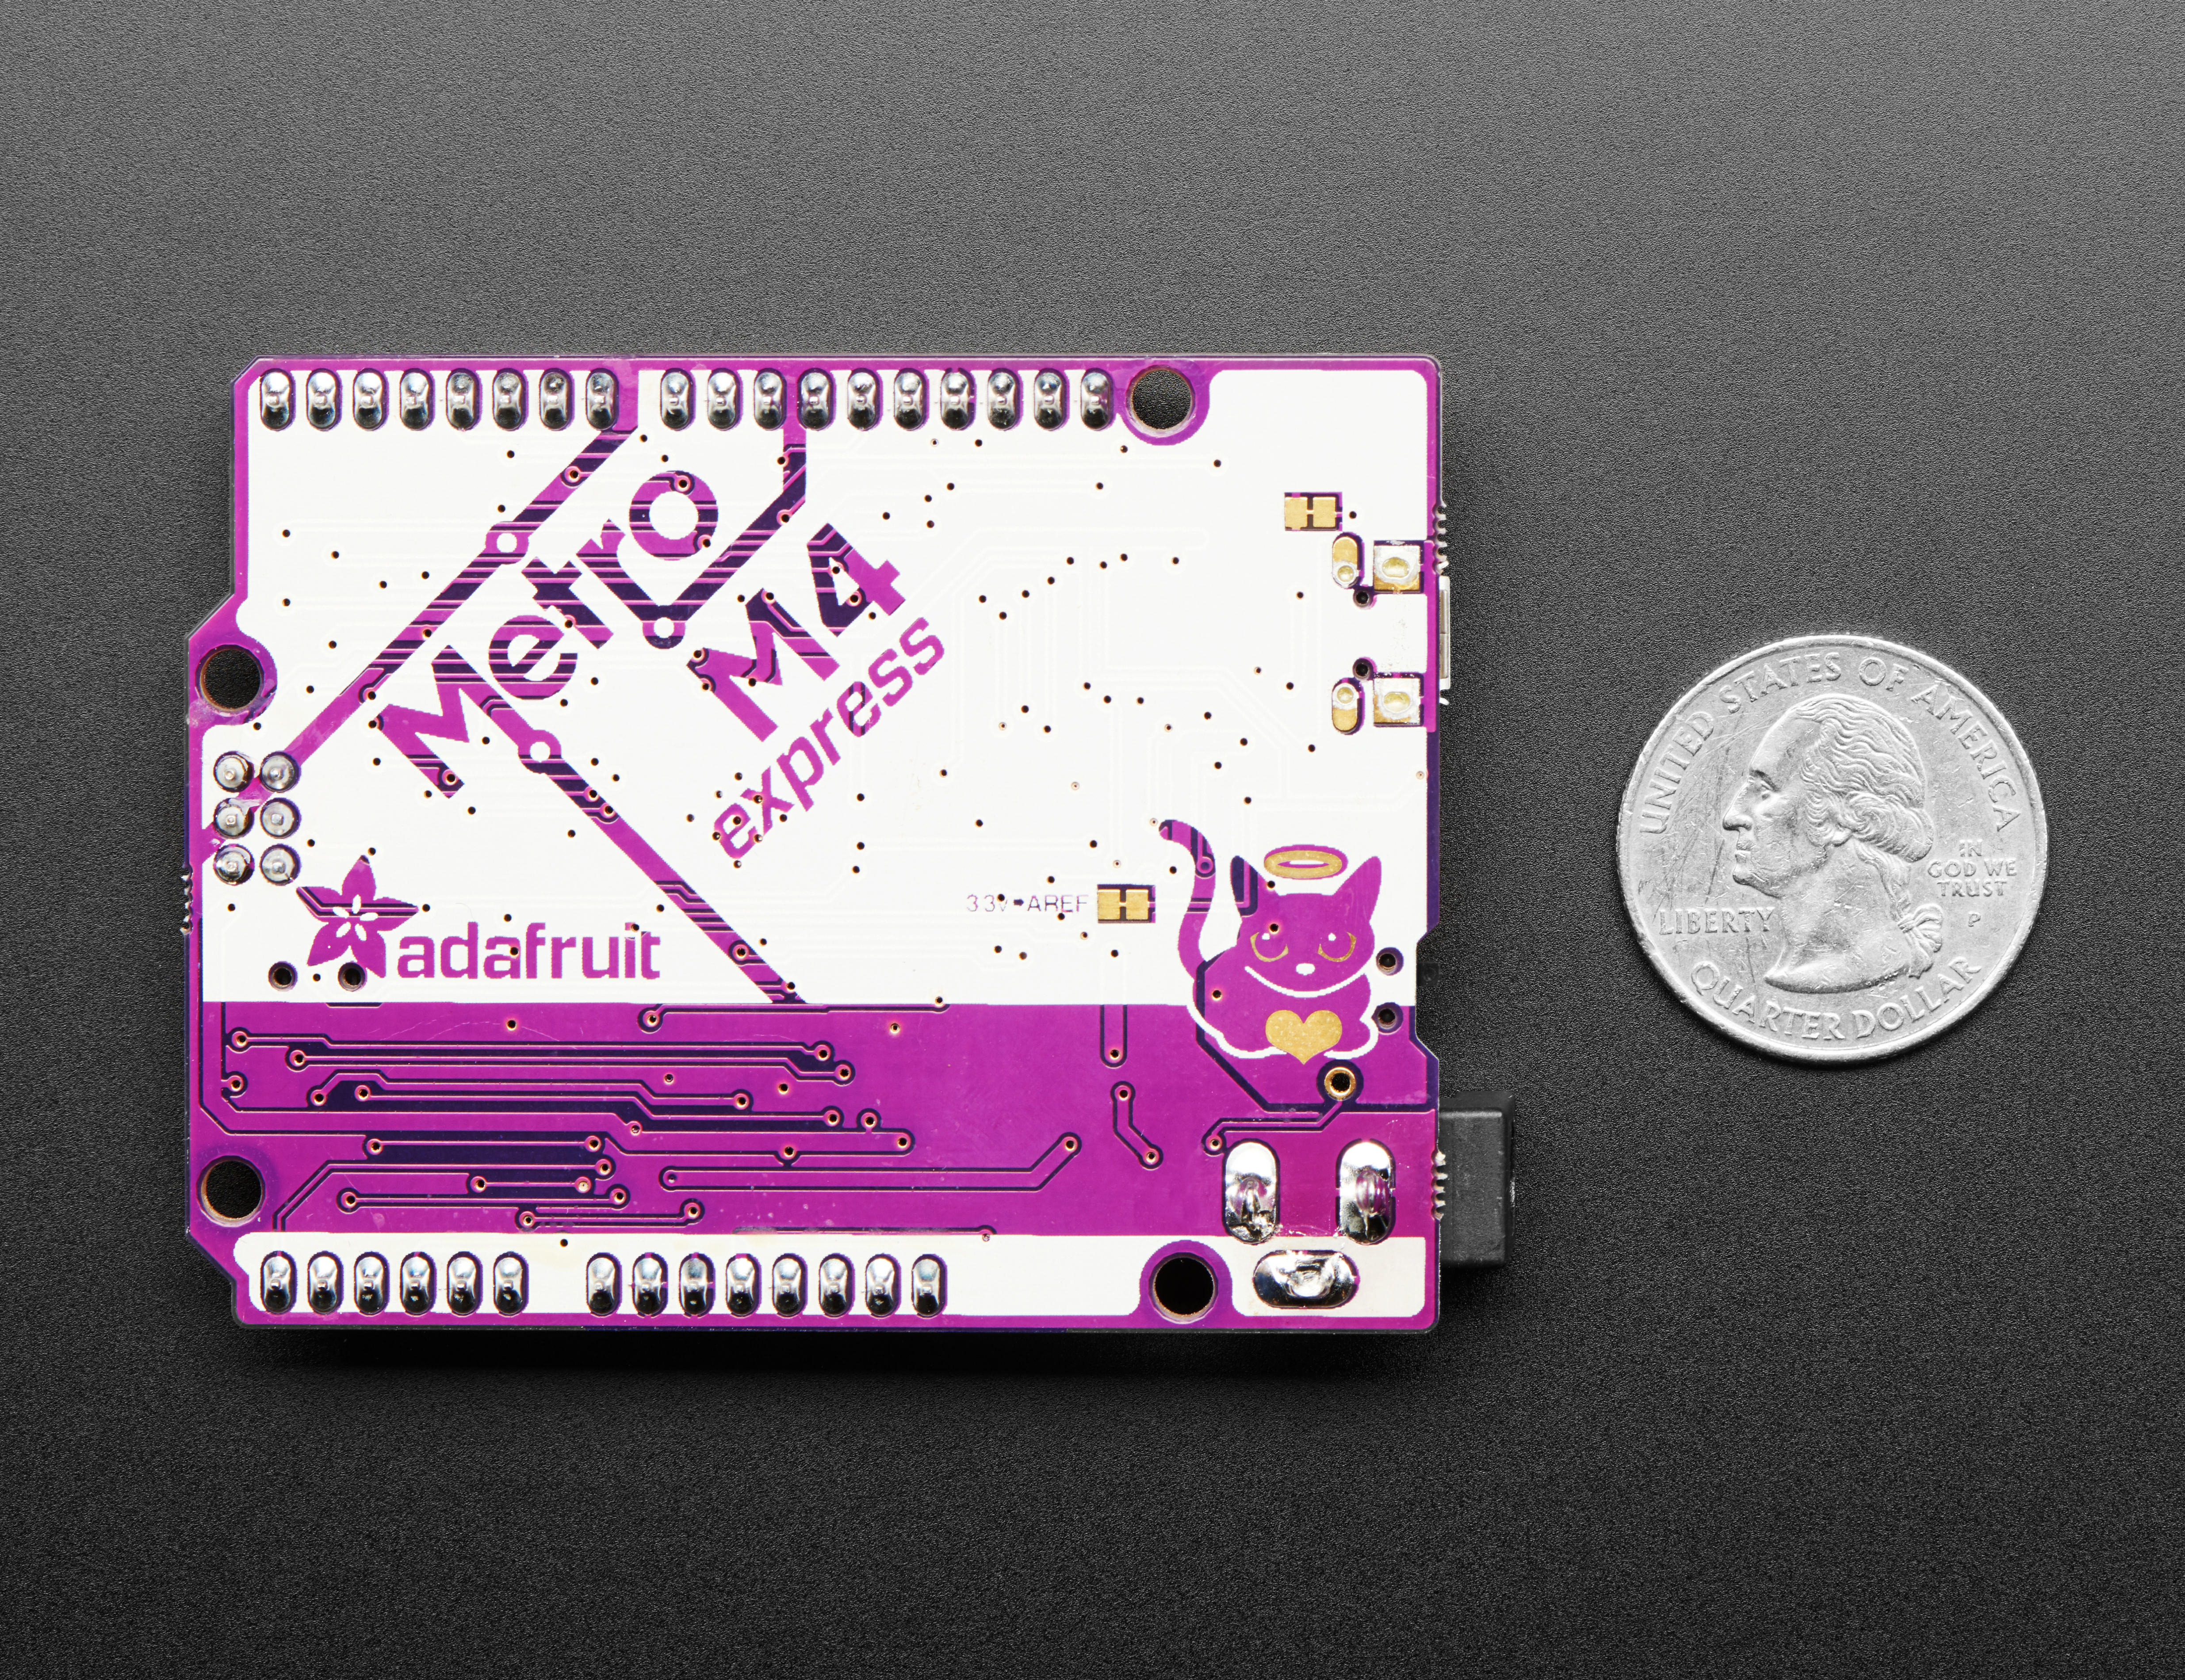 adafruit_products_46115019555_d72a7ac0b3_o.jpg